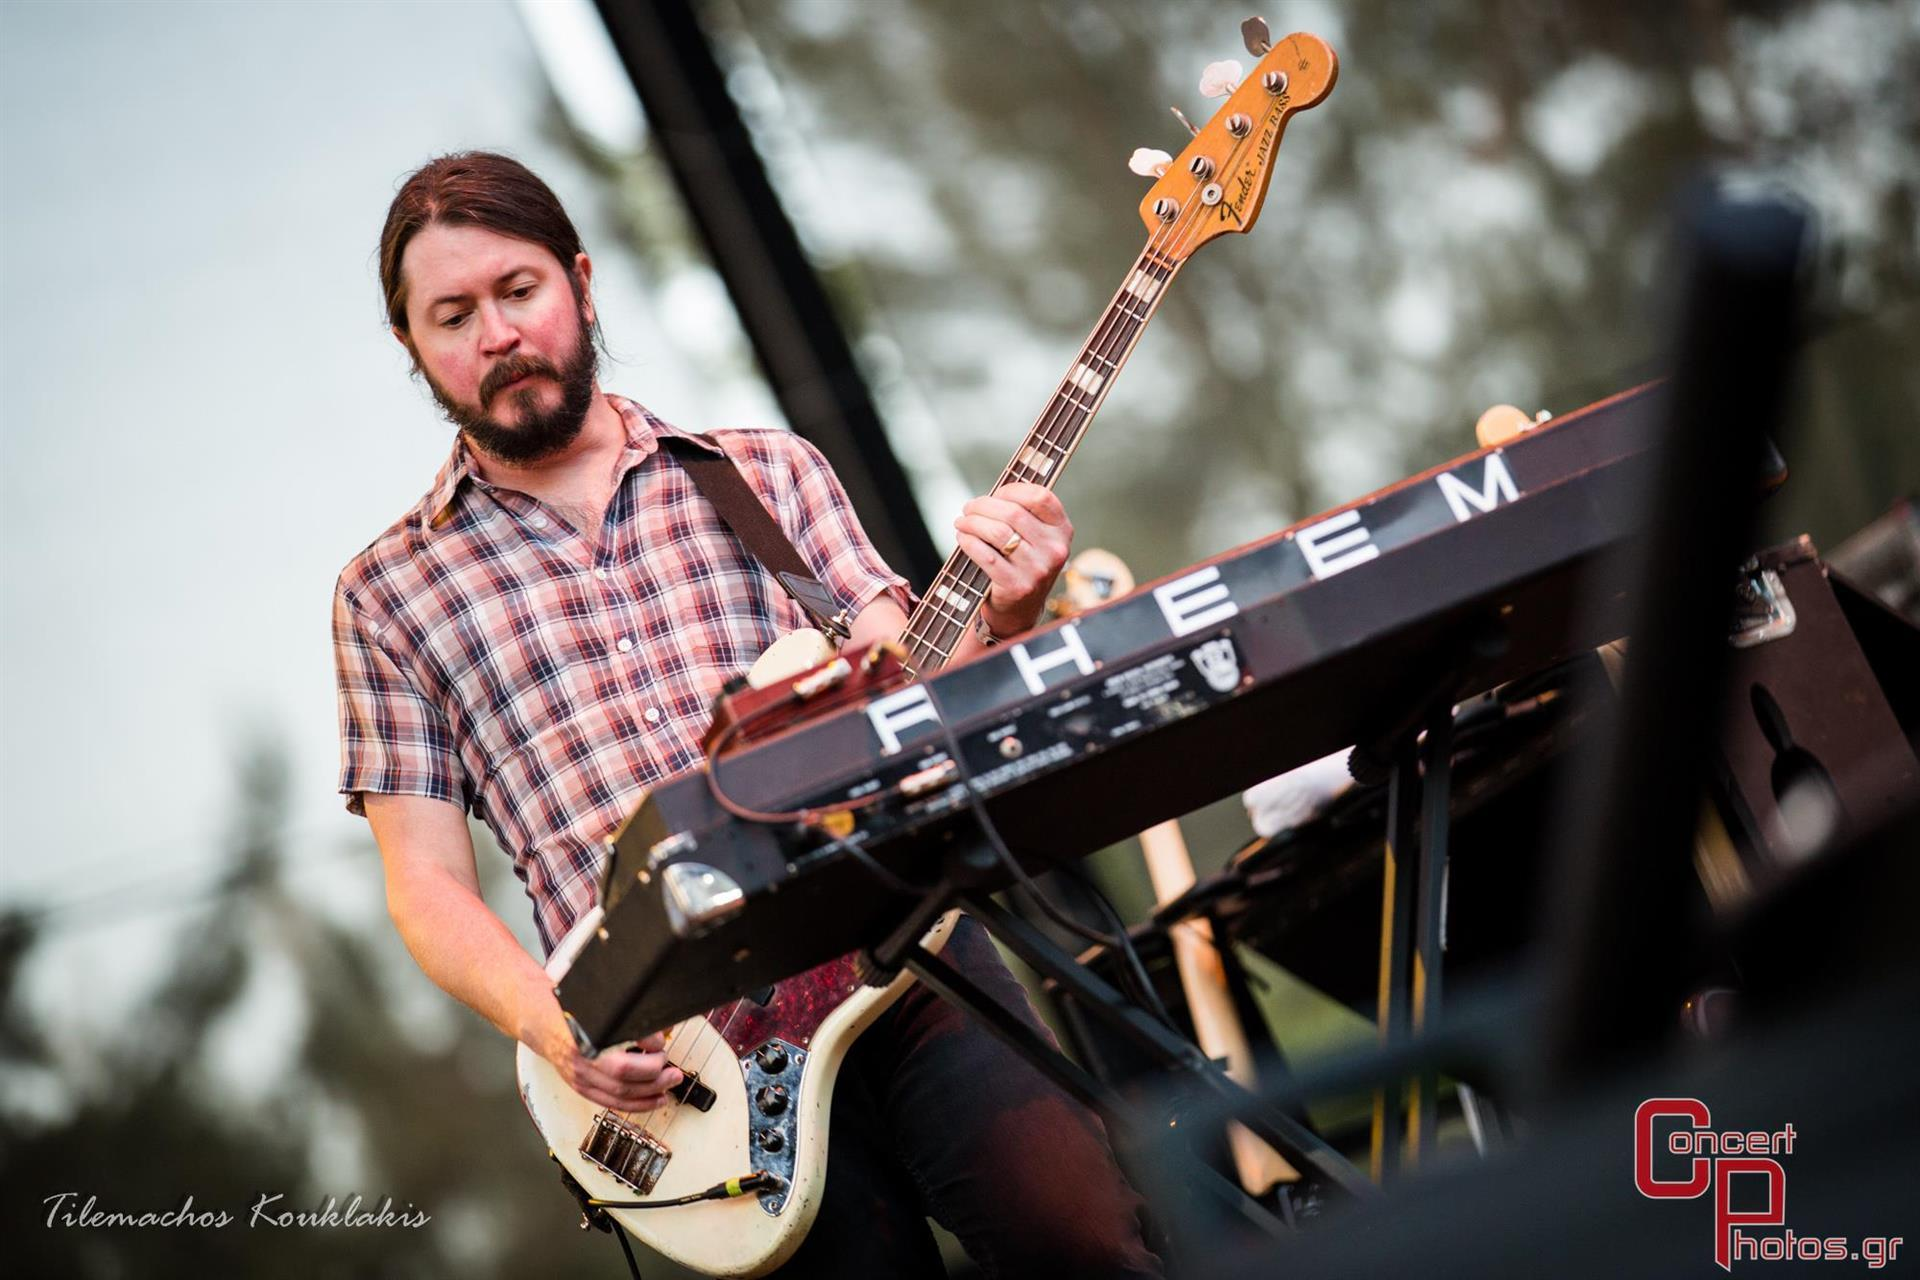 Rockwave 2015 - Black Keys-Black Angels-1000mods-The Big Nose Attack-Puta Volcano-Rockwave 2015 - Black Keys-Black Angels-1000mods photographer:  - 04A_Black Angels_07